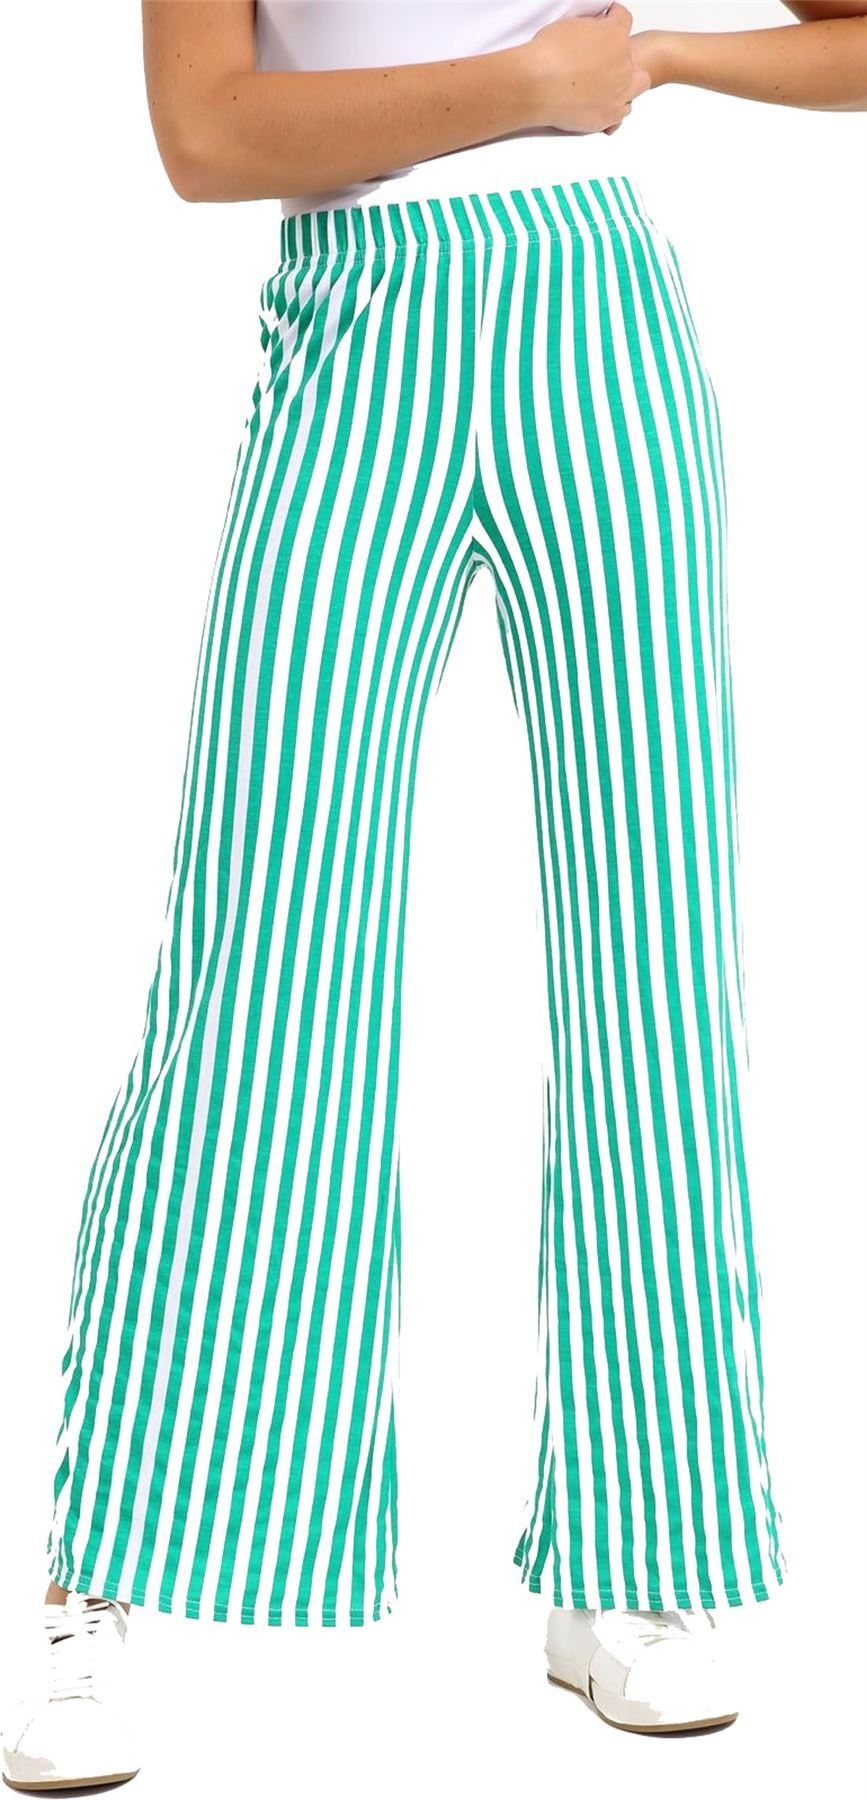 New-Ladies-Floral-Printed-Wide-Leg-Flared-Parallel-Baggy-Trousers-Pants-Palazzo thumbnail 17